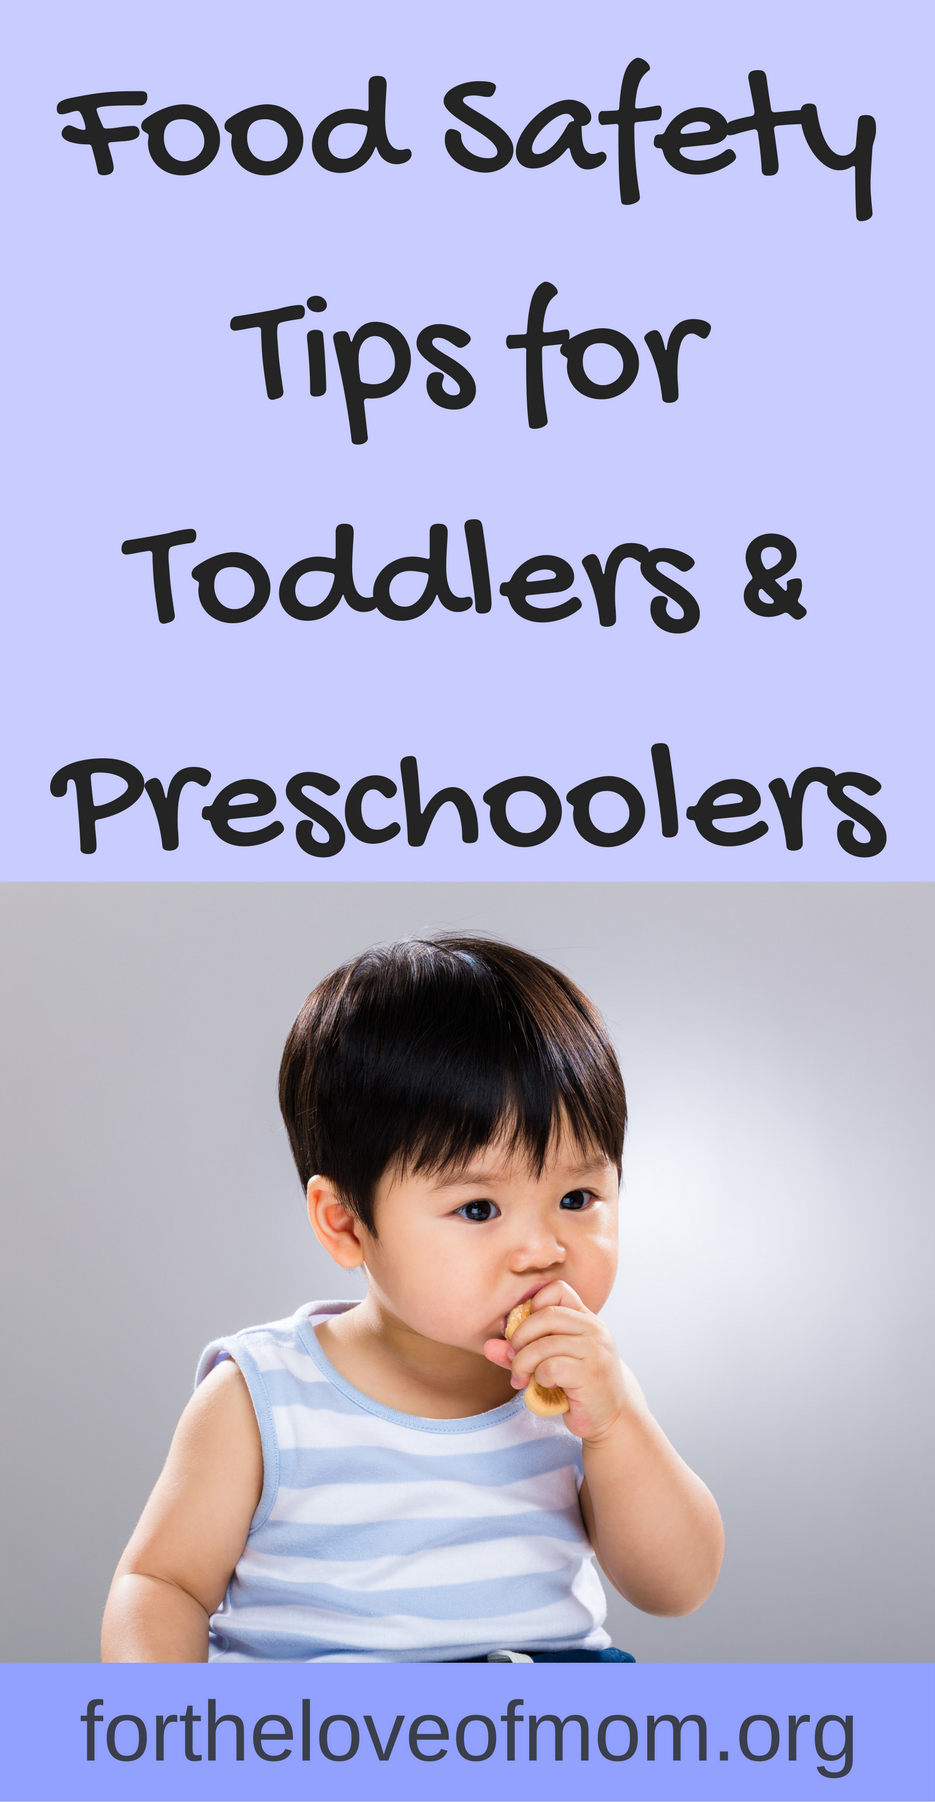 Food Safety for Toddlers & Preschoolers | Food Safety Tips for Parents of Young Children | How to Prevent Choking in Toddlers | Food Choking Prevention Tips for Parents | #toddlers | #preschoolers | #toddlerfood | #kidfood | #parenting | www.fortheloveofmom.org